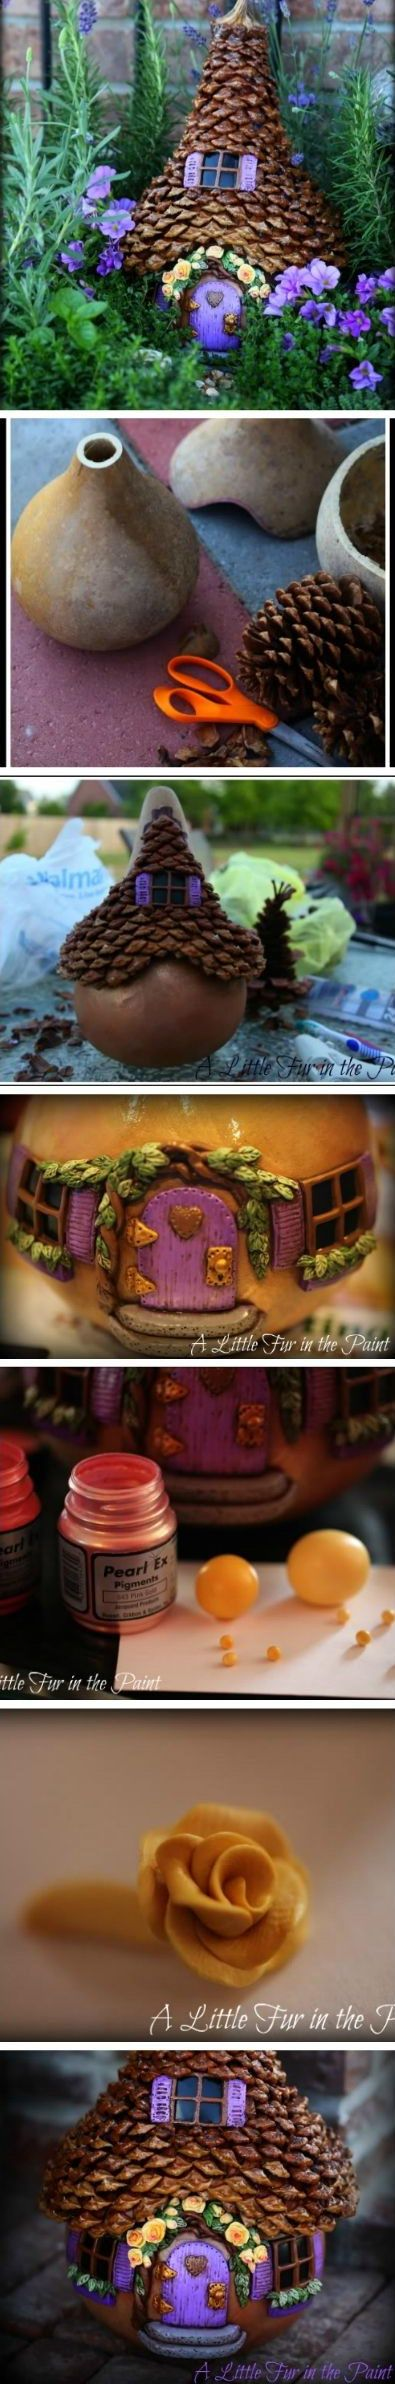 35 Awesome DIY Fairy Garden Ideas and Tutorials